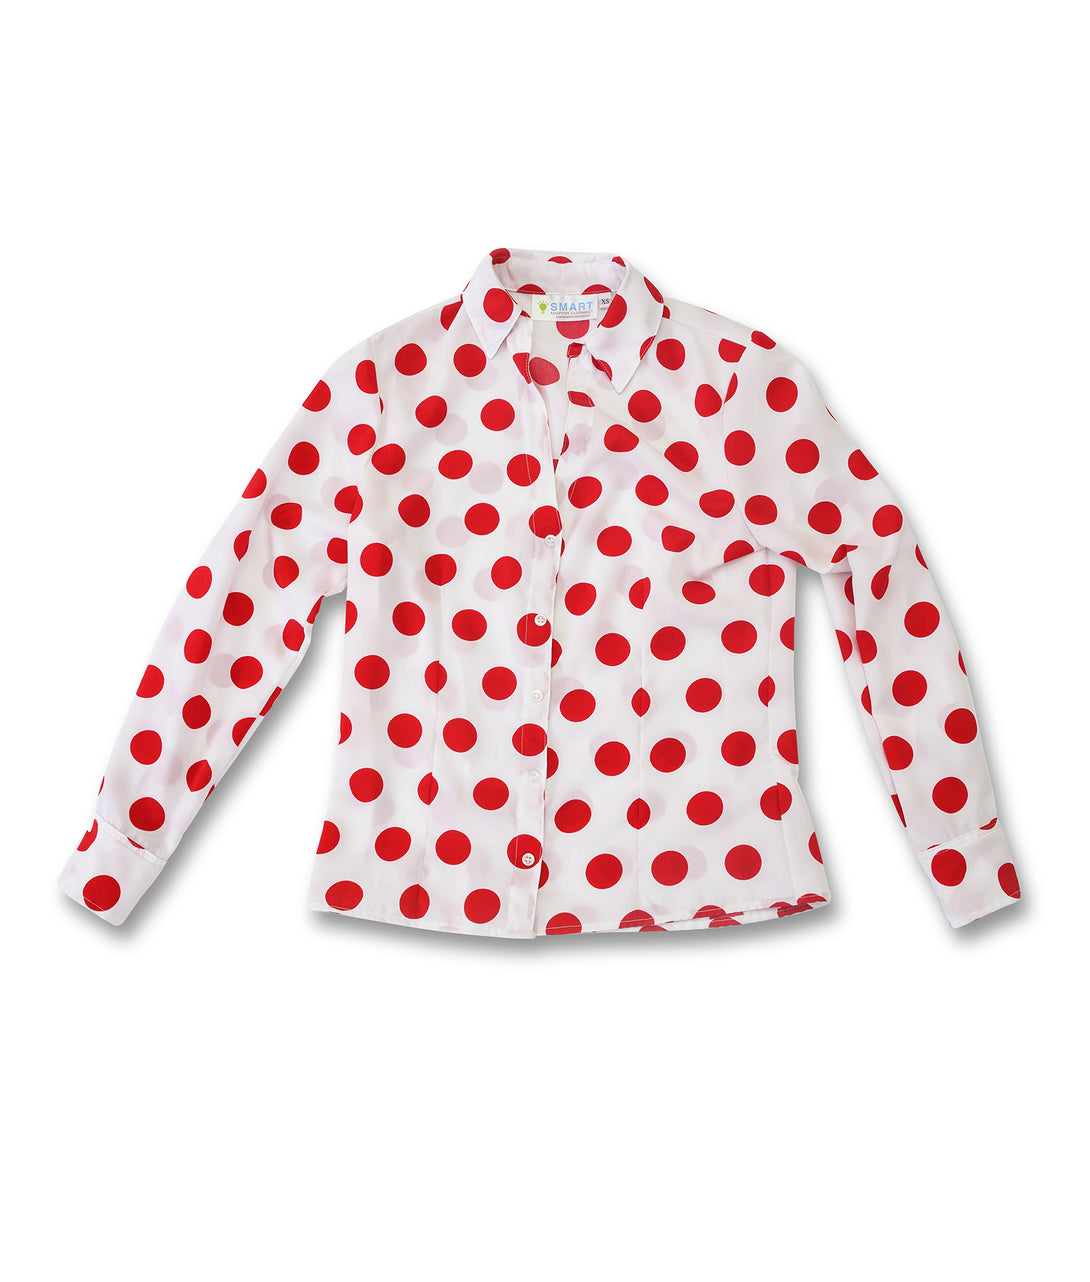 Alana Soul Adaptive Blouse in White with Red Dots